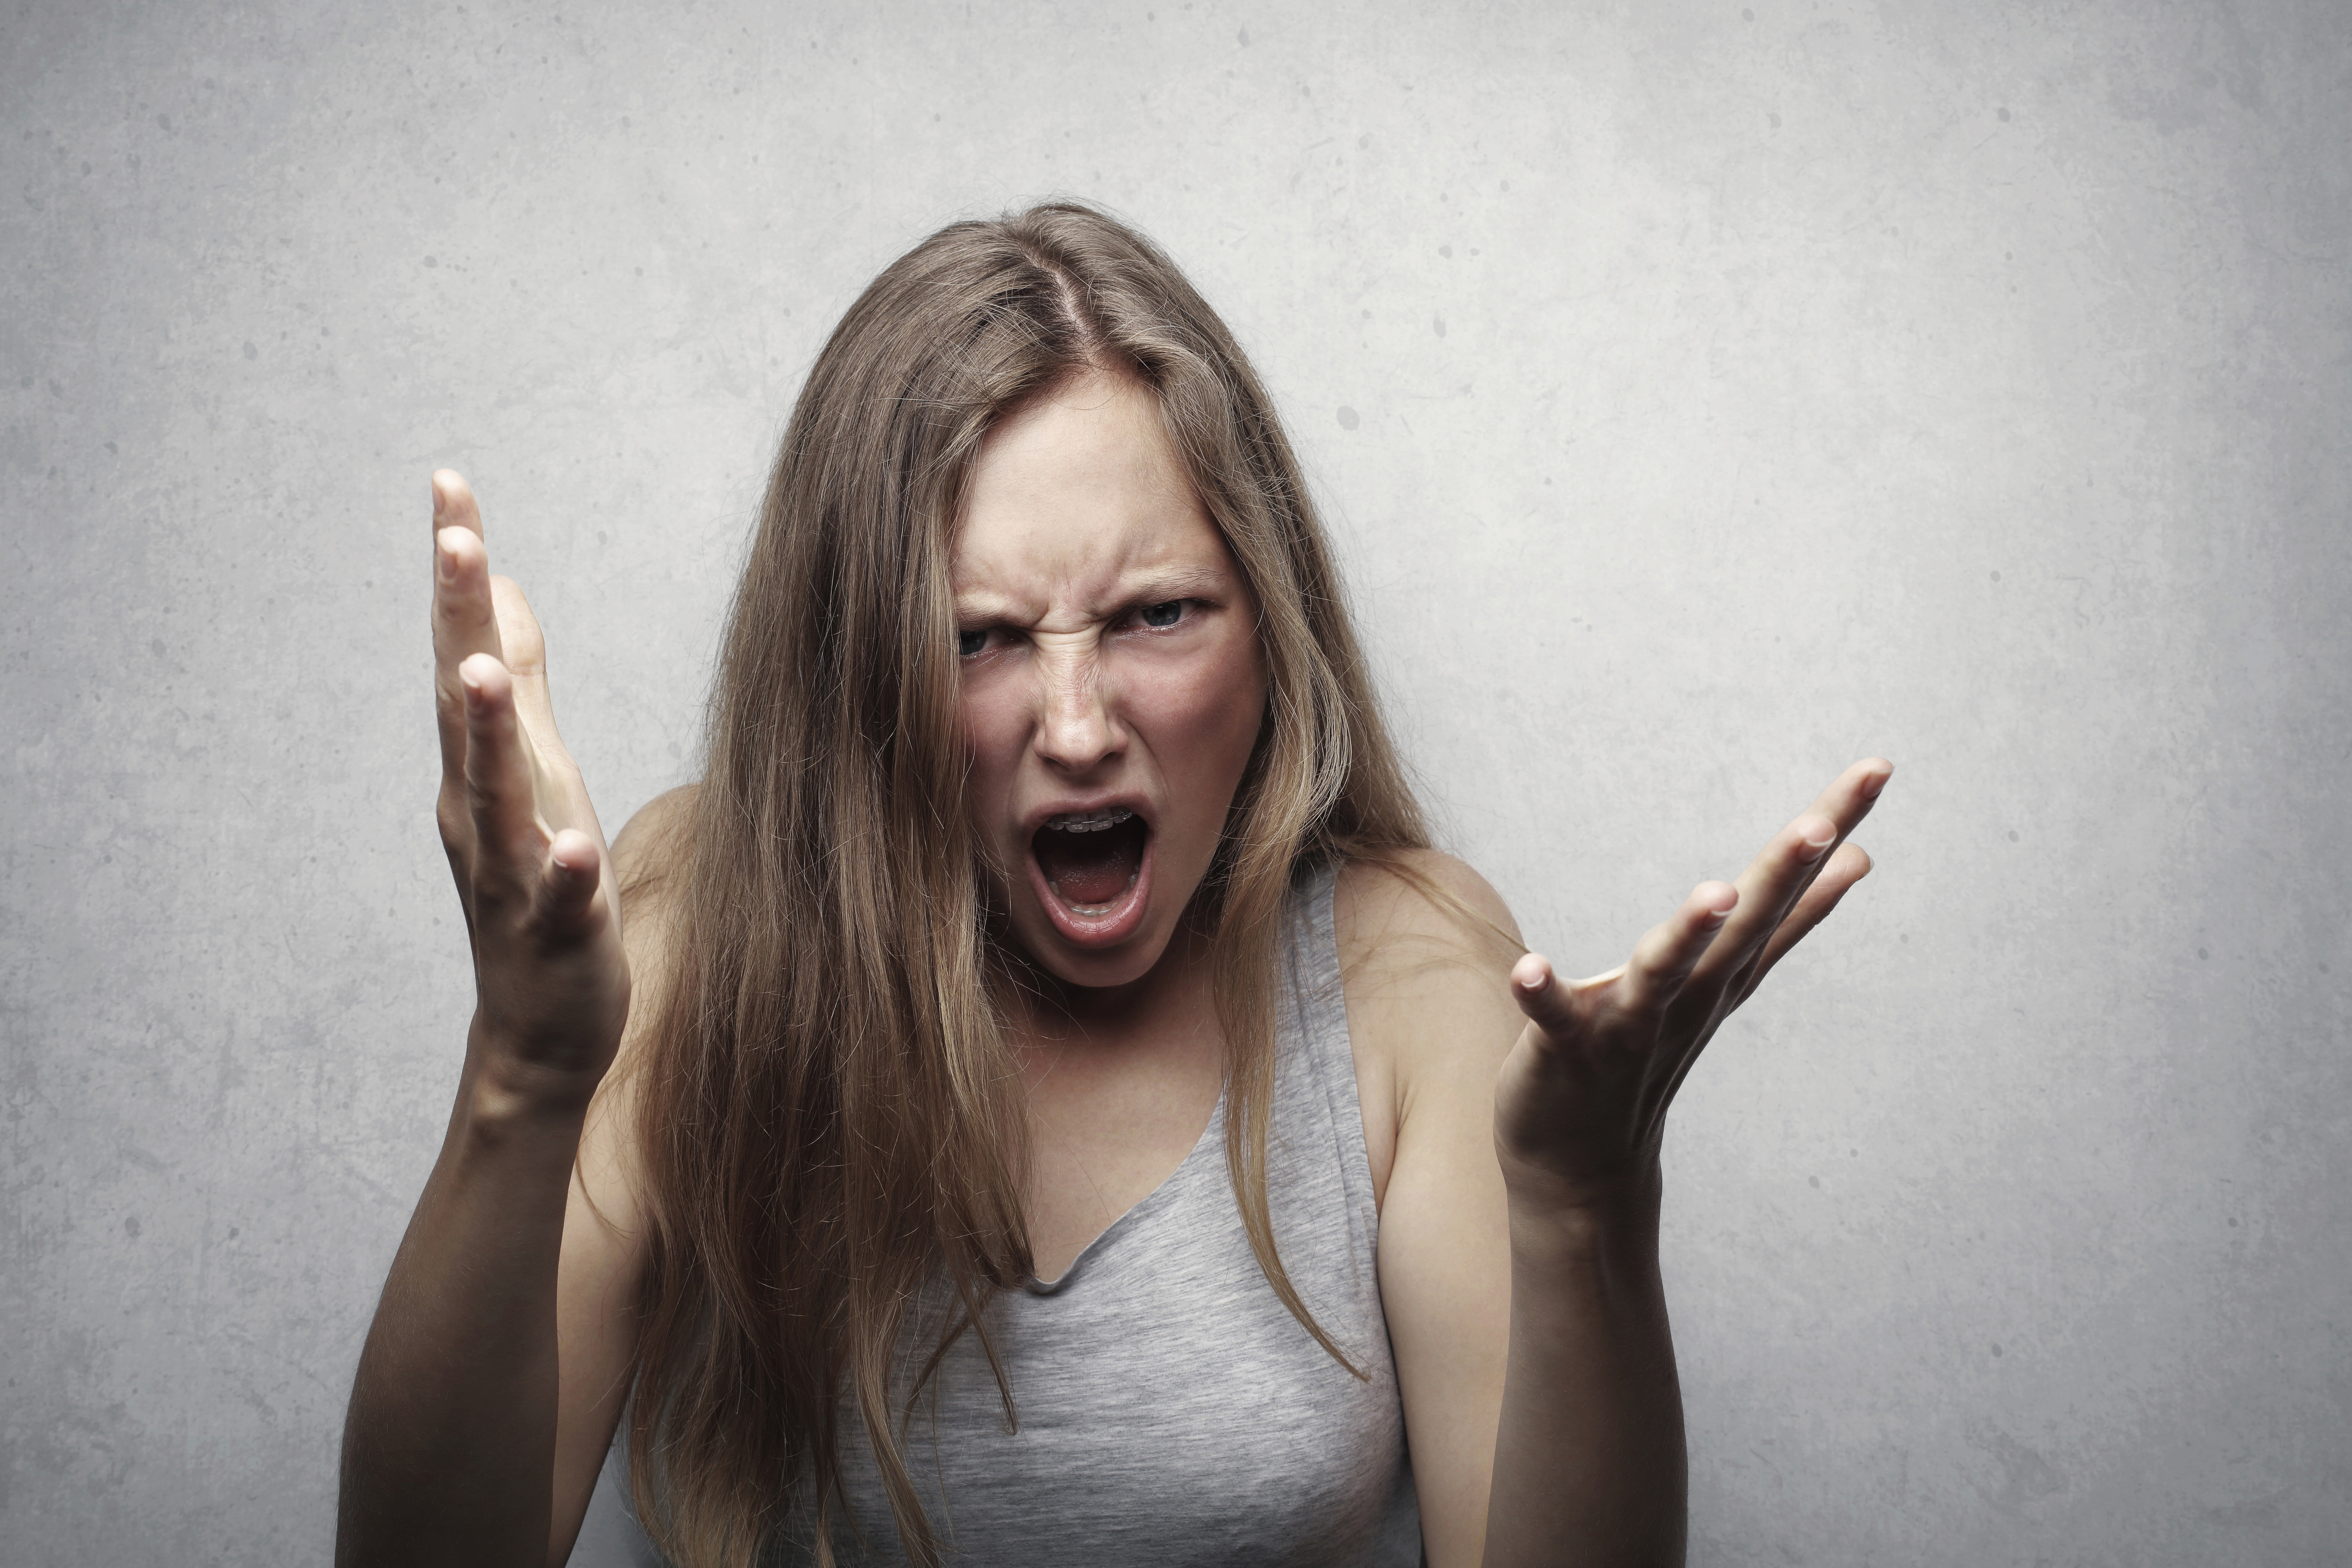 Angry woman in a grey tank top   Photo: Pexels